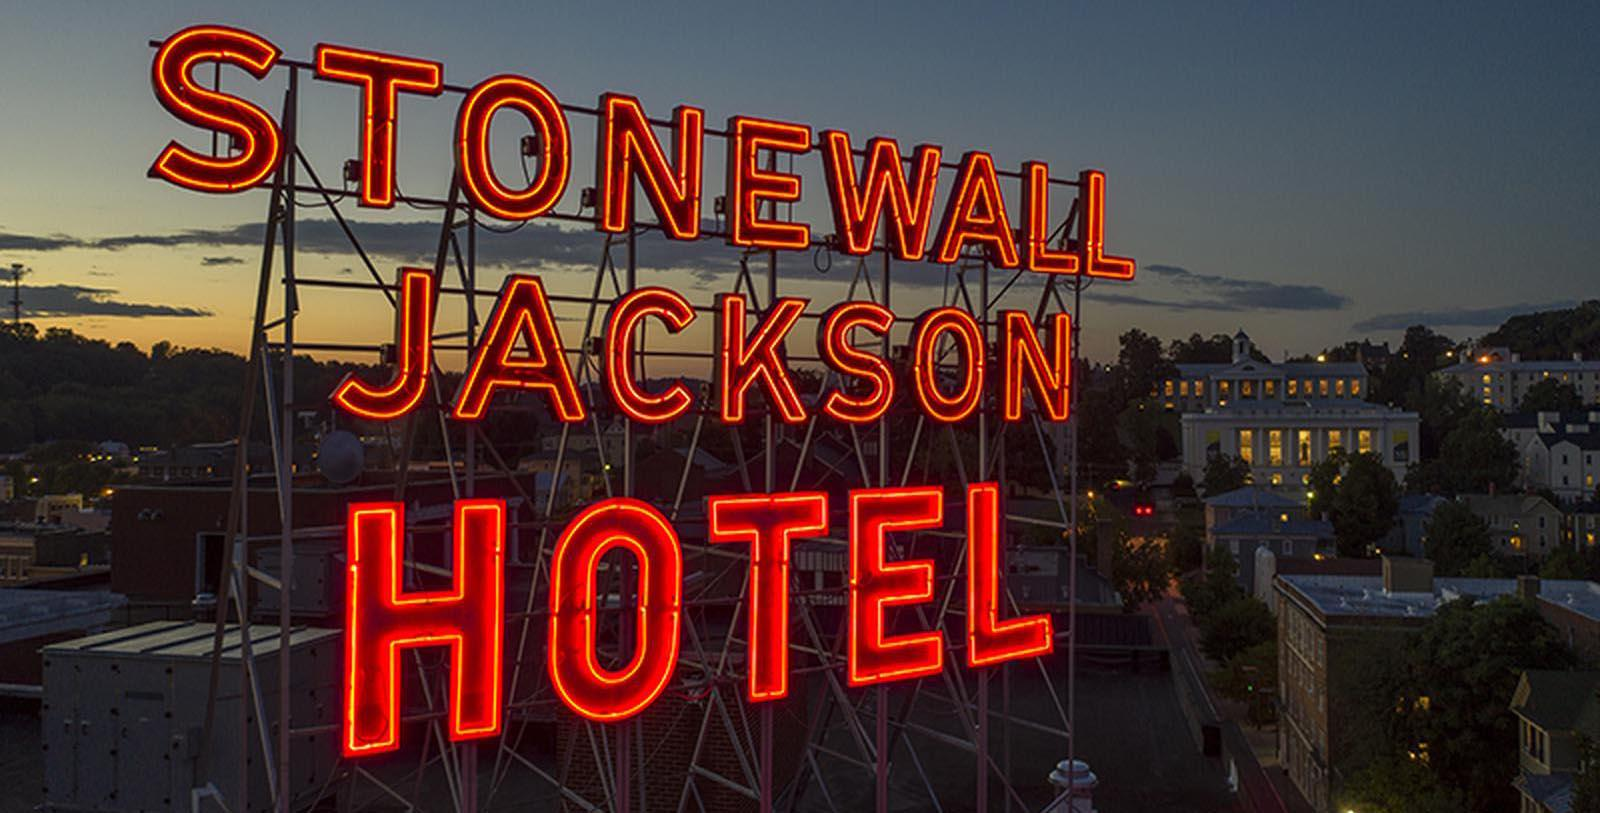 Image of Stonewall Jackson Neon Sign, Stonewall Jackson Hotel & Conference Center, 1924, Member of Historic Hotels of America, in Staunton, Virginia, Explore